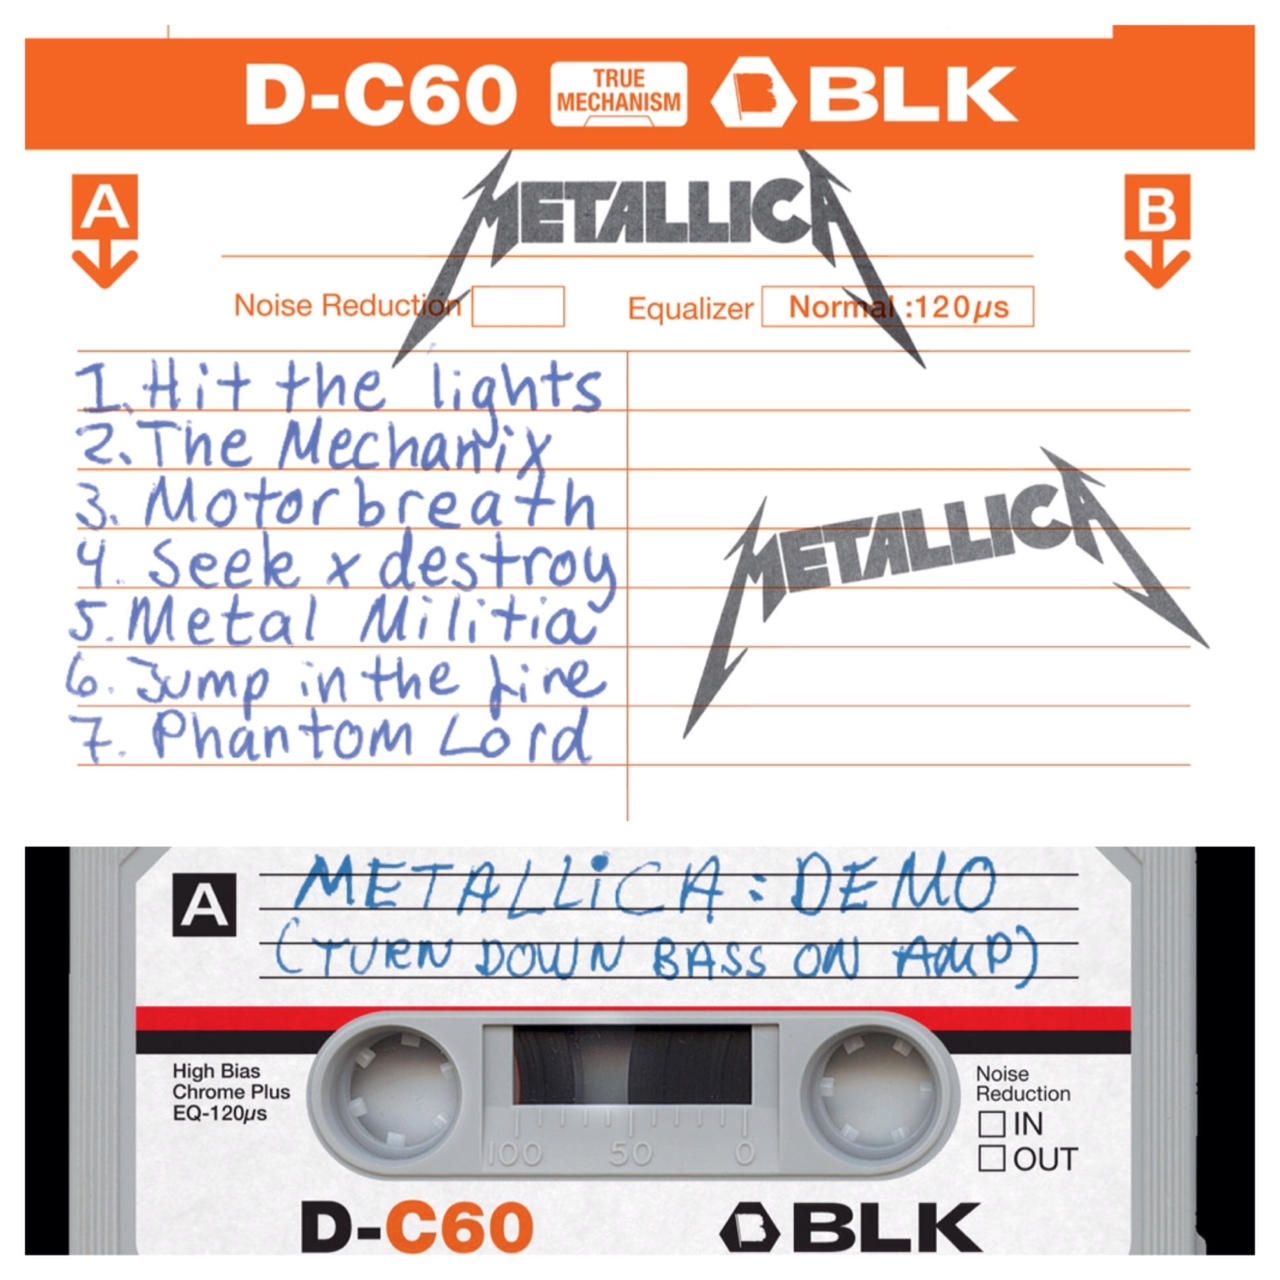 Trip back in time with Metallica demo....on cassette.